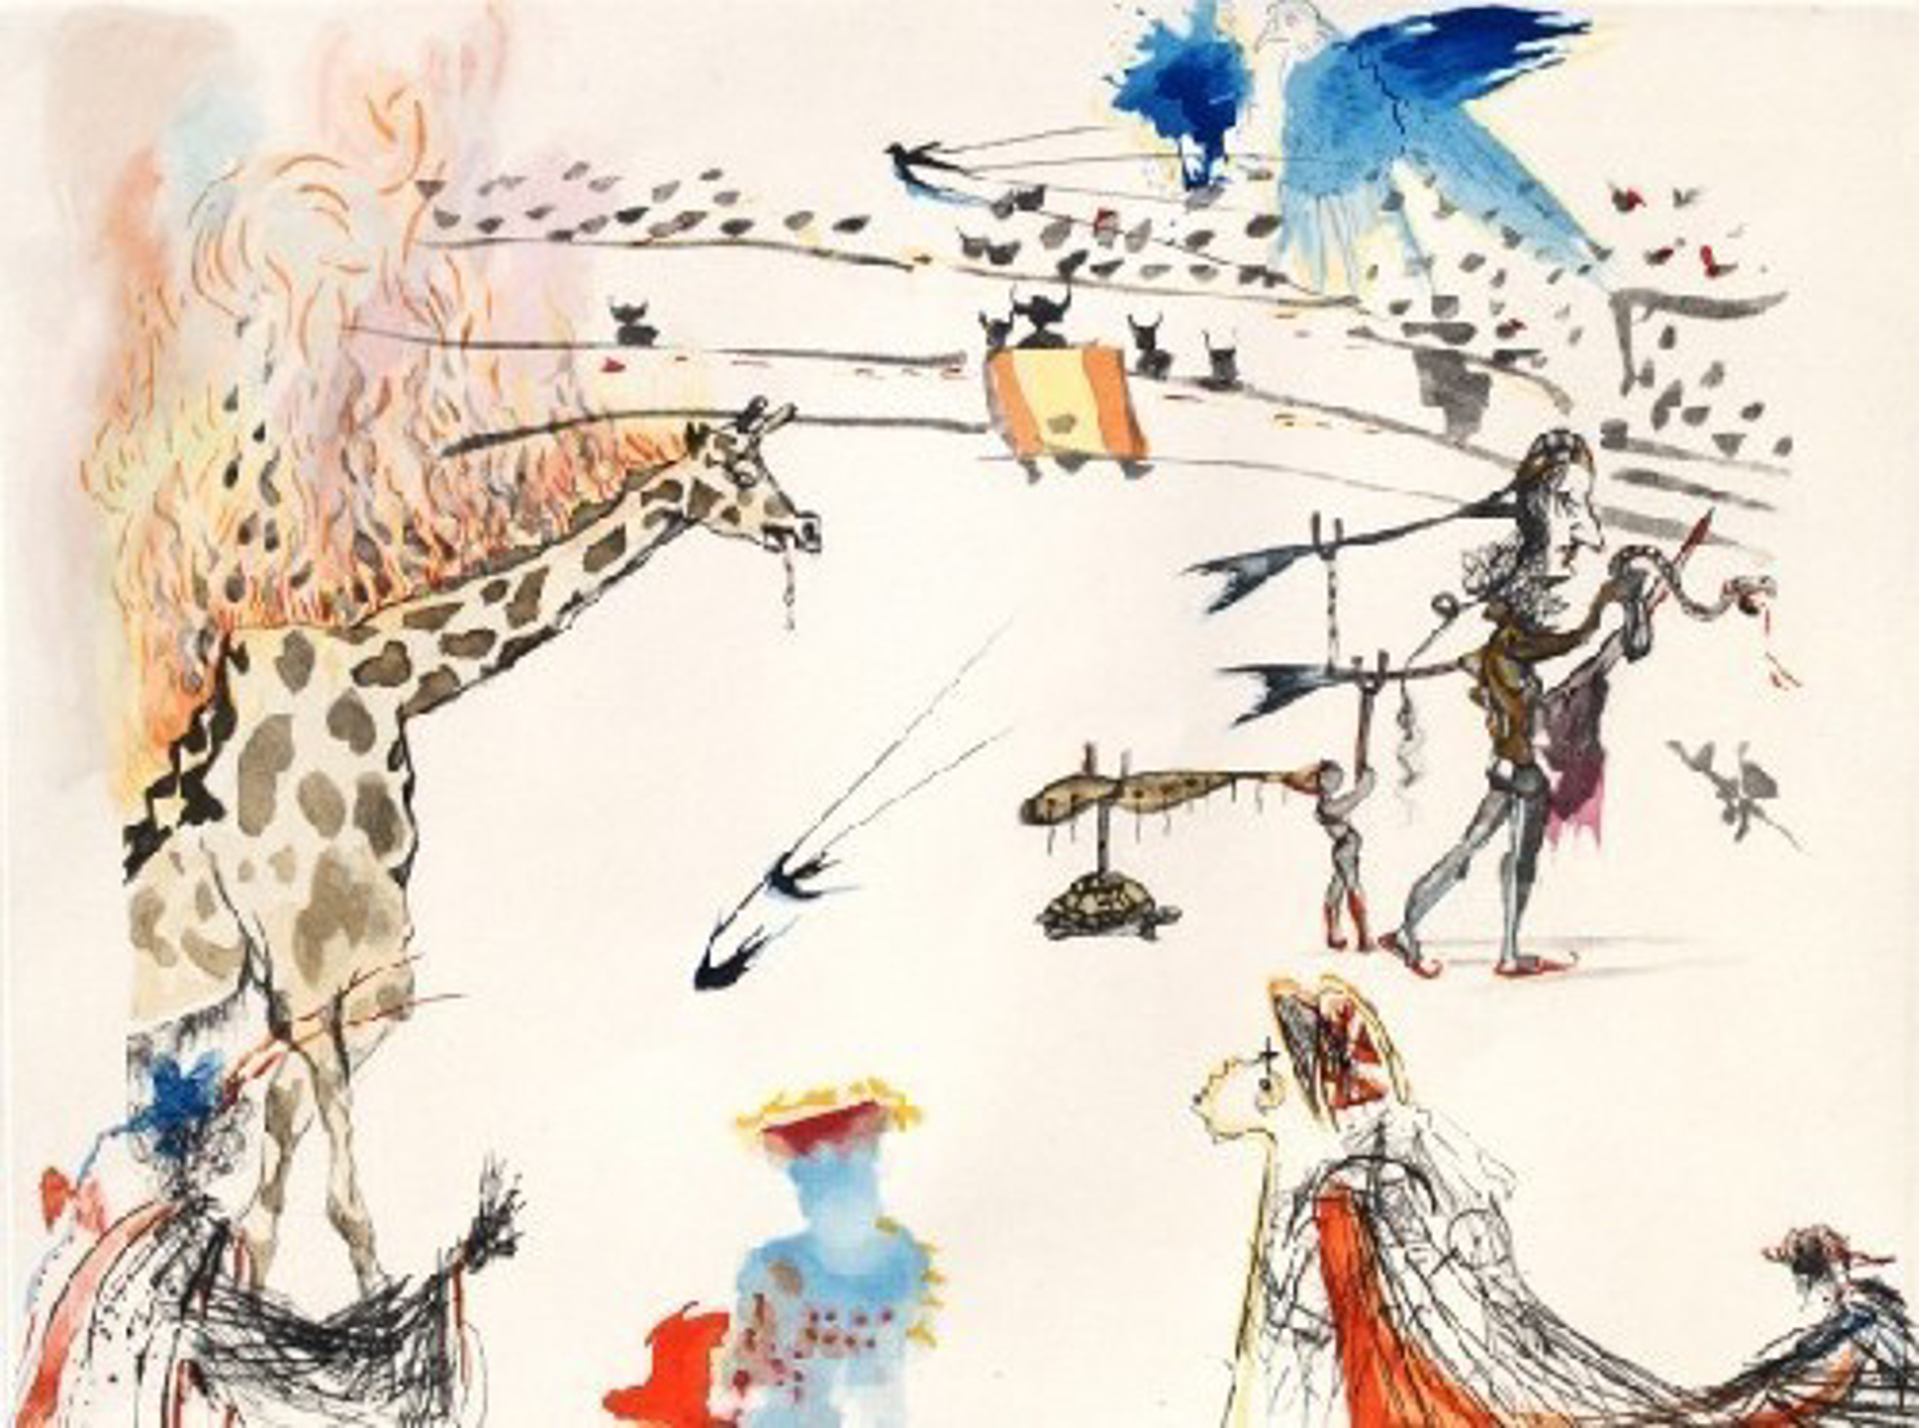 The Burning Giraffe from the Tauromachie Suite by Salvador Dali (1904 - 1989)